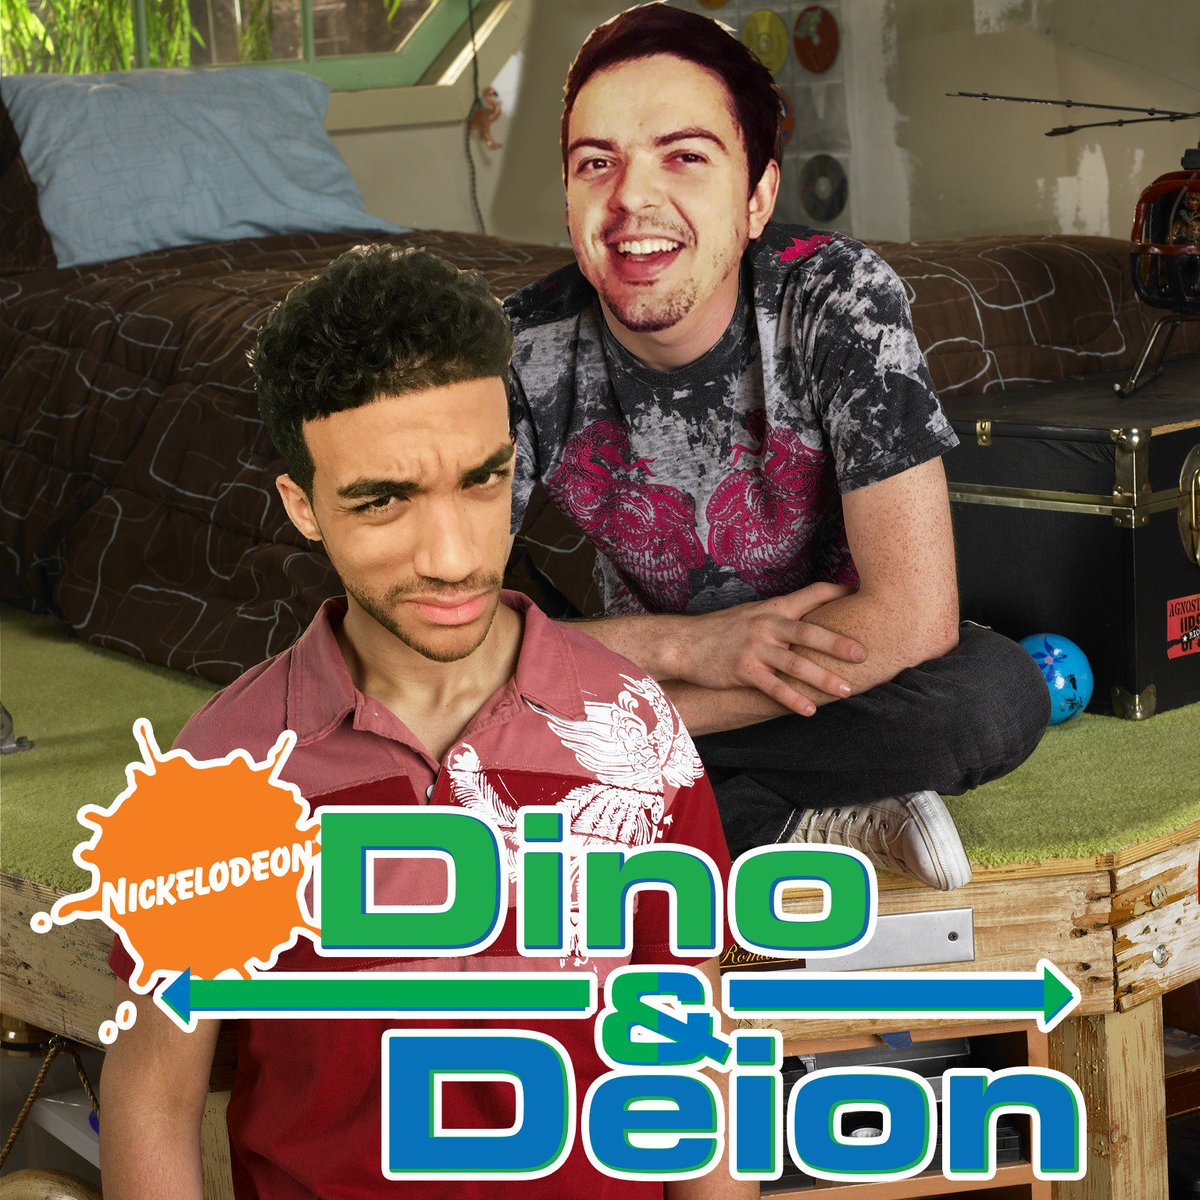 Leaked new Nickelodeon series Dino & Deion @Rhymestyle @SeeReax